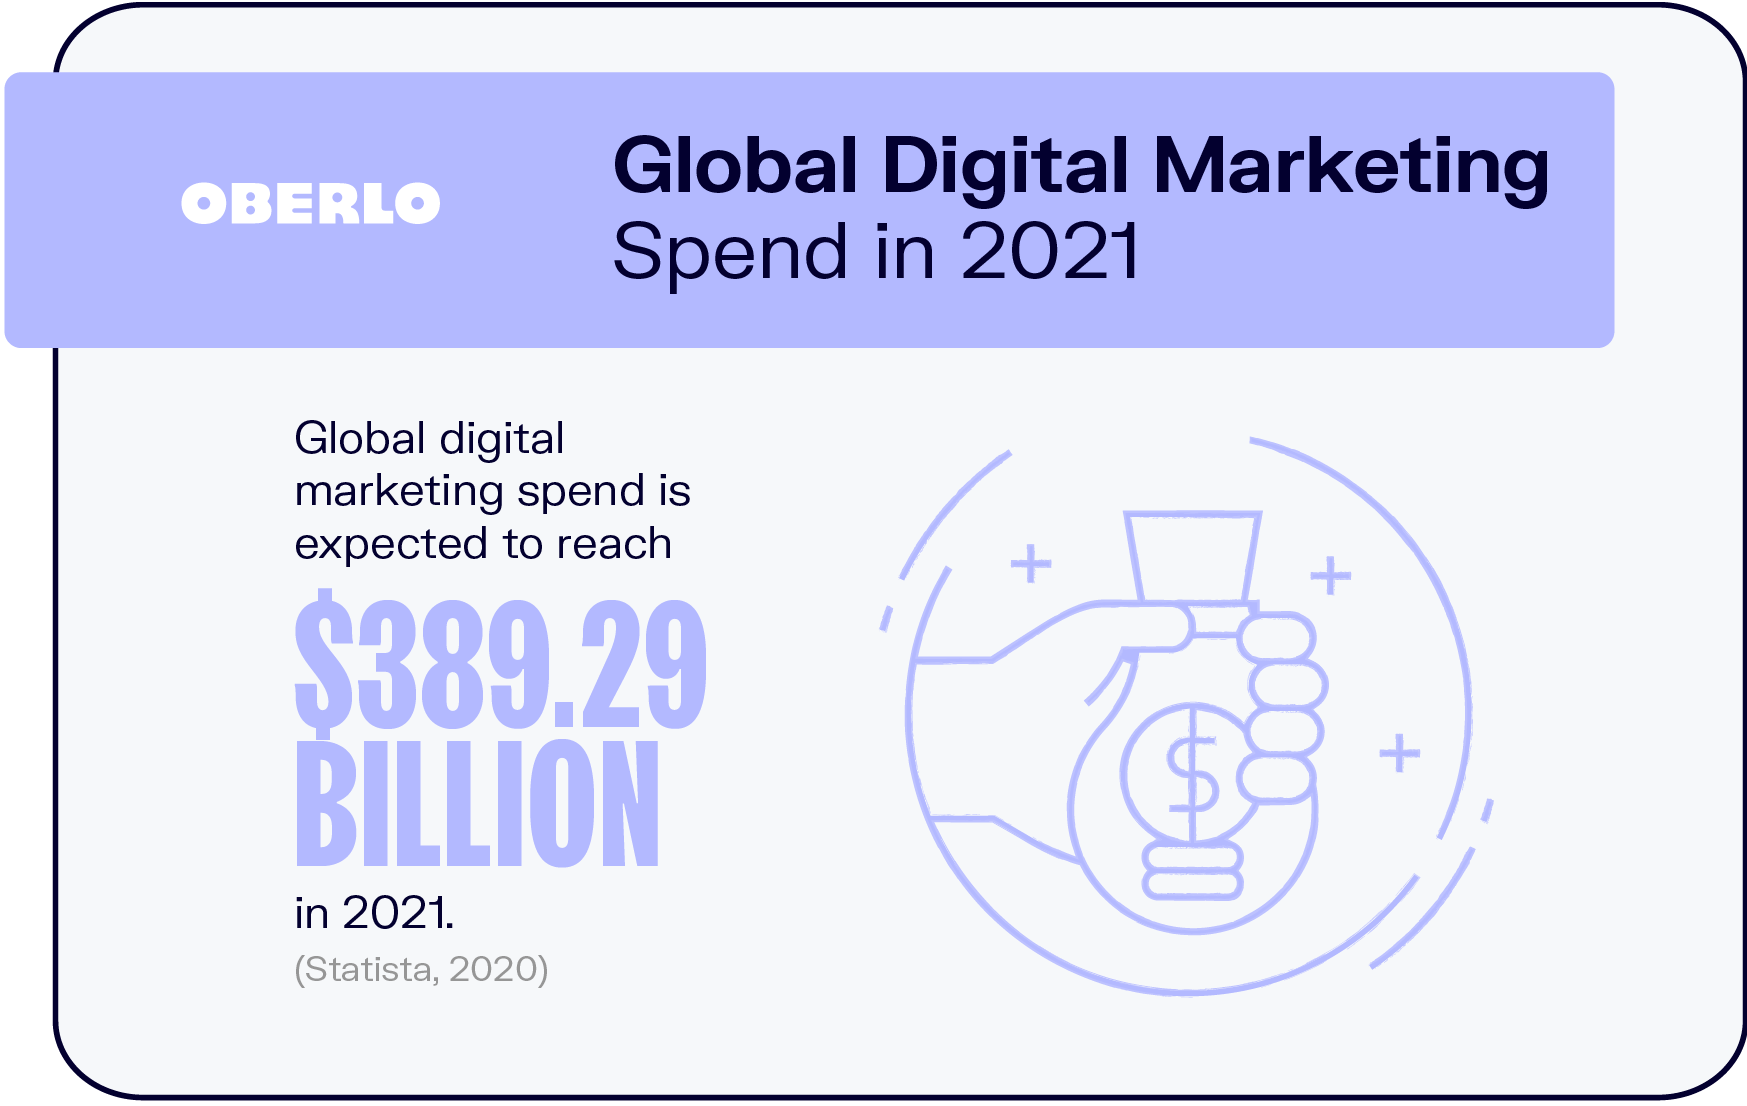 Global Digital Marketing Spend in 2021